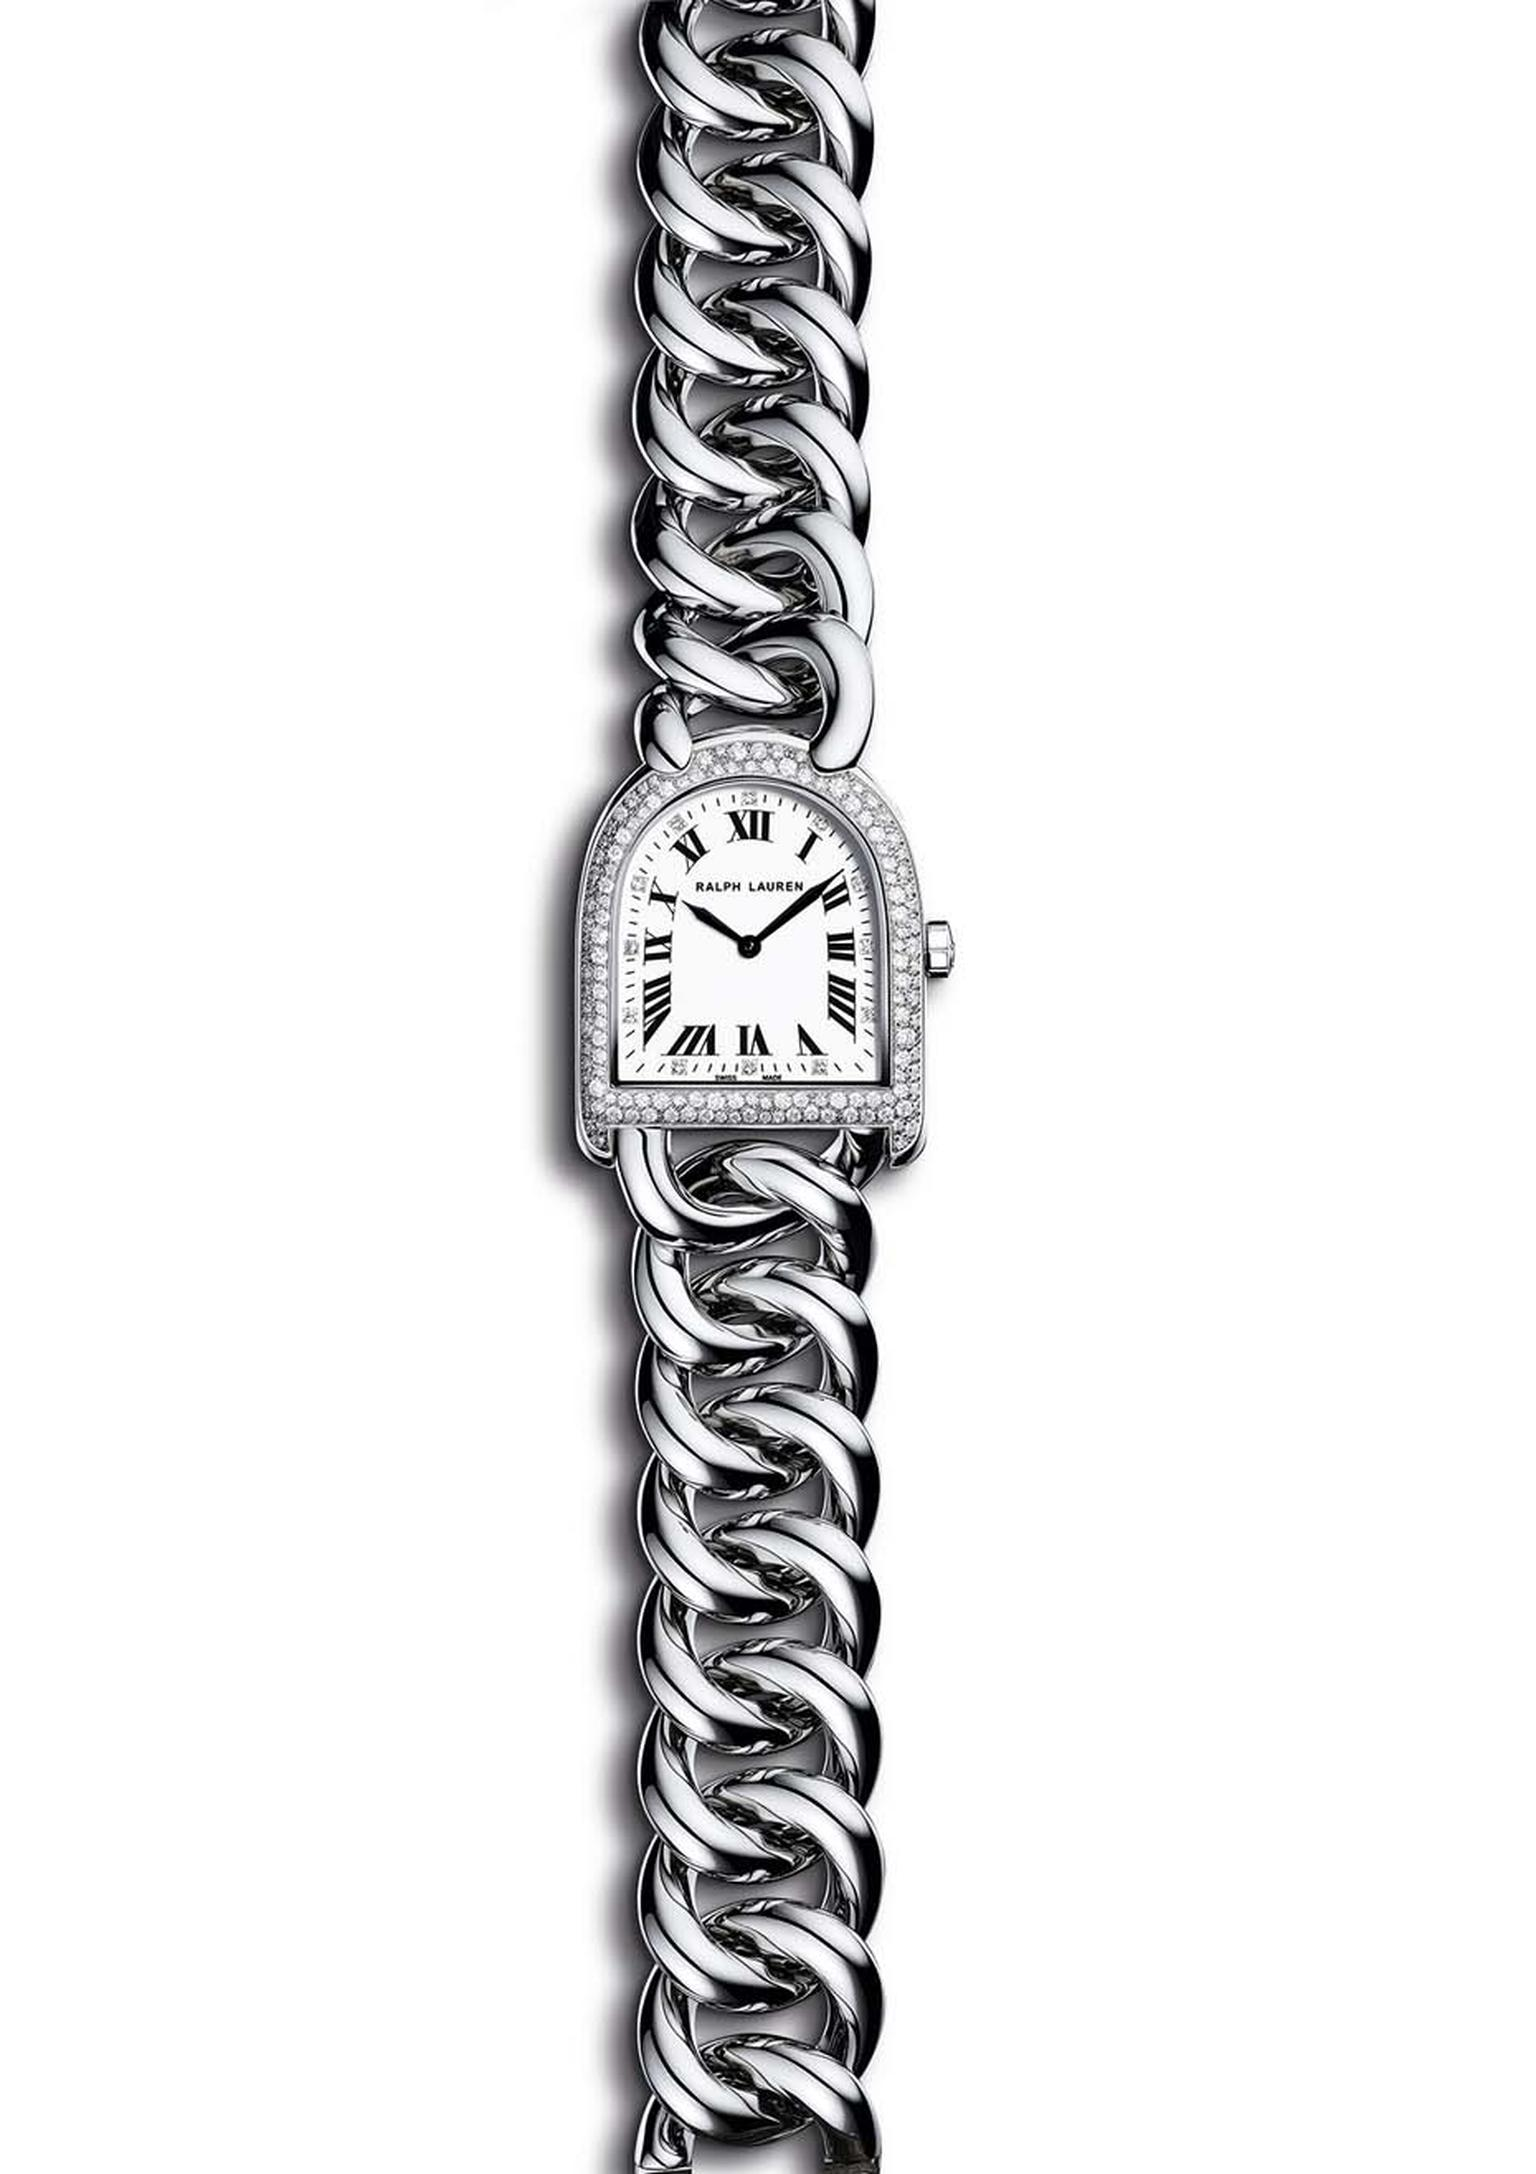 Ralph Lauren Stirrup Petite-Link bracelet watch in steel with a mother-of-pearl dial and snowfall diamond setting.